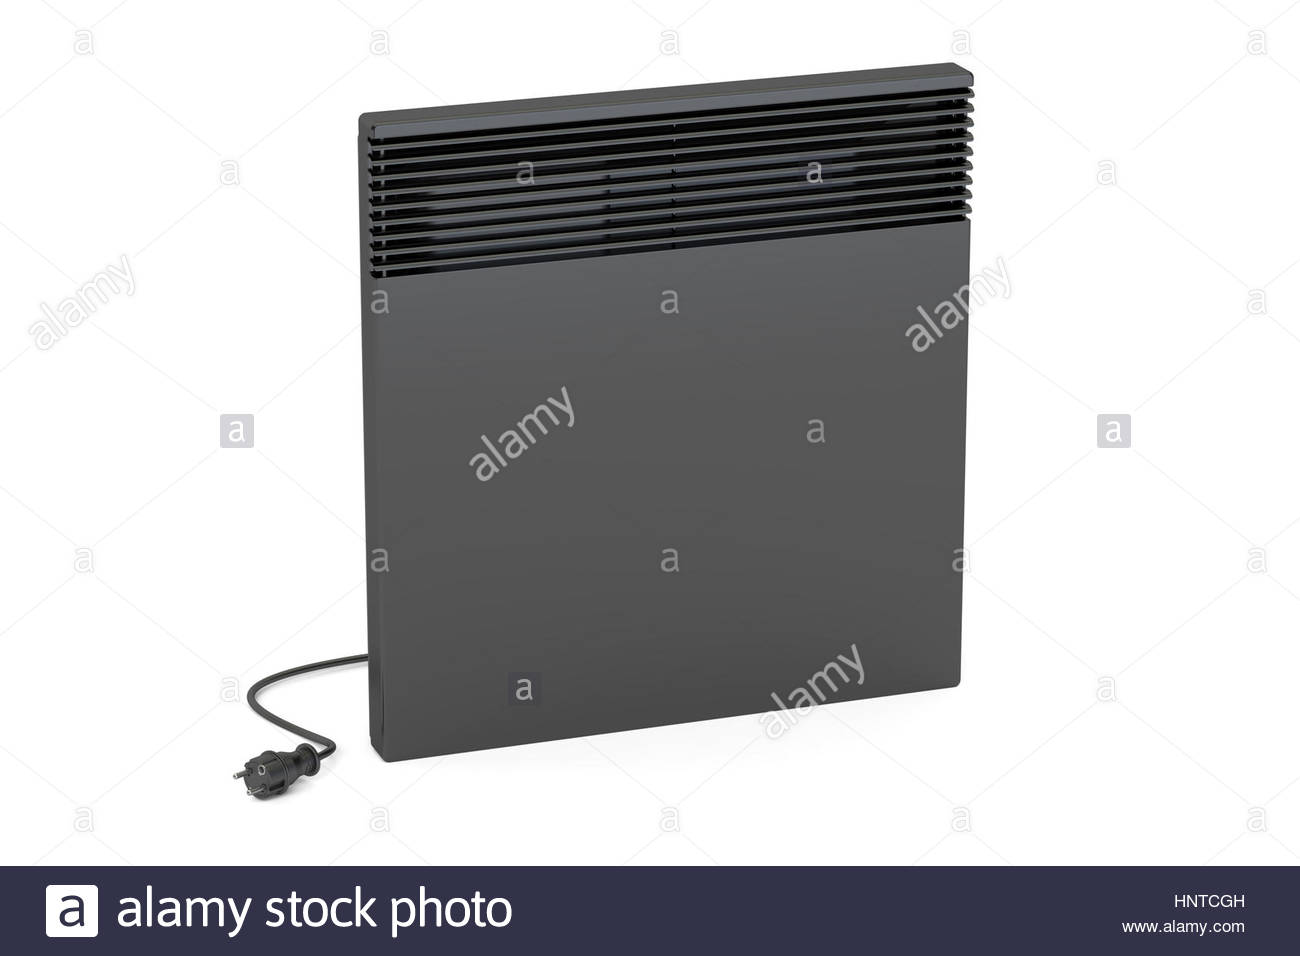 Black convection heater 3D rendering isolated on white background 1300x956